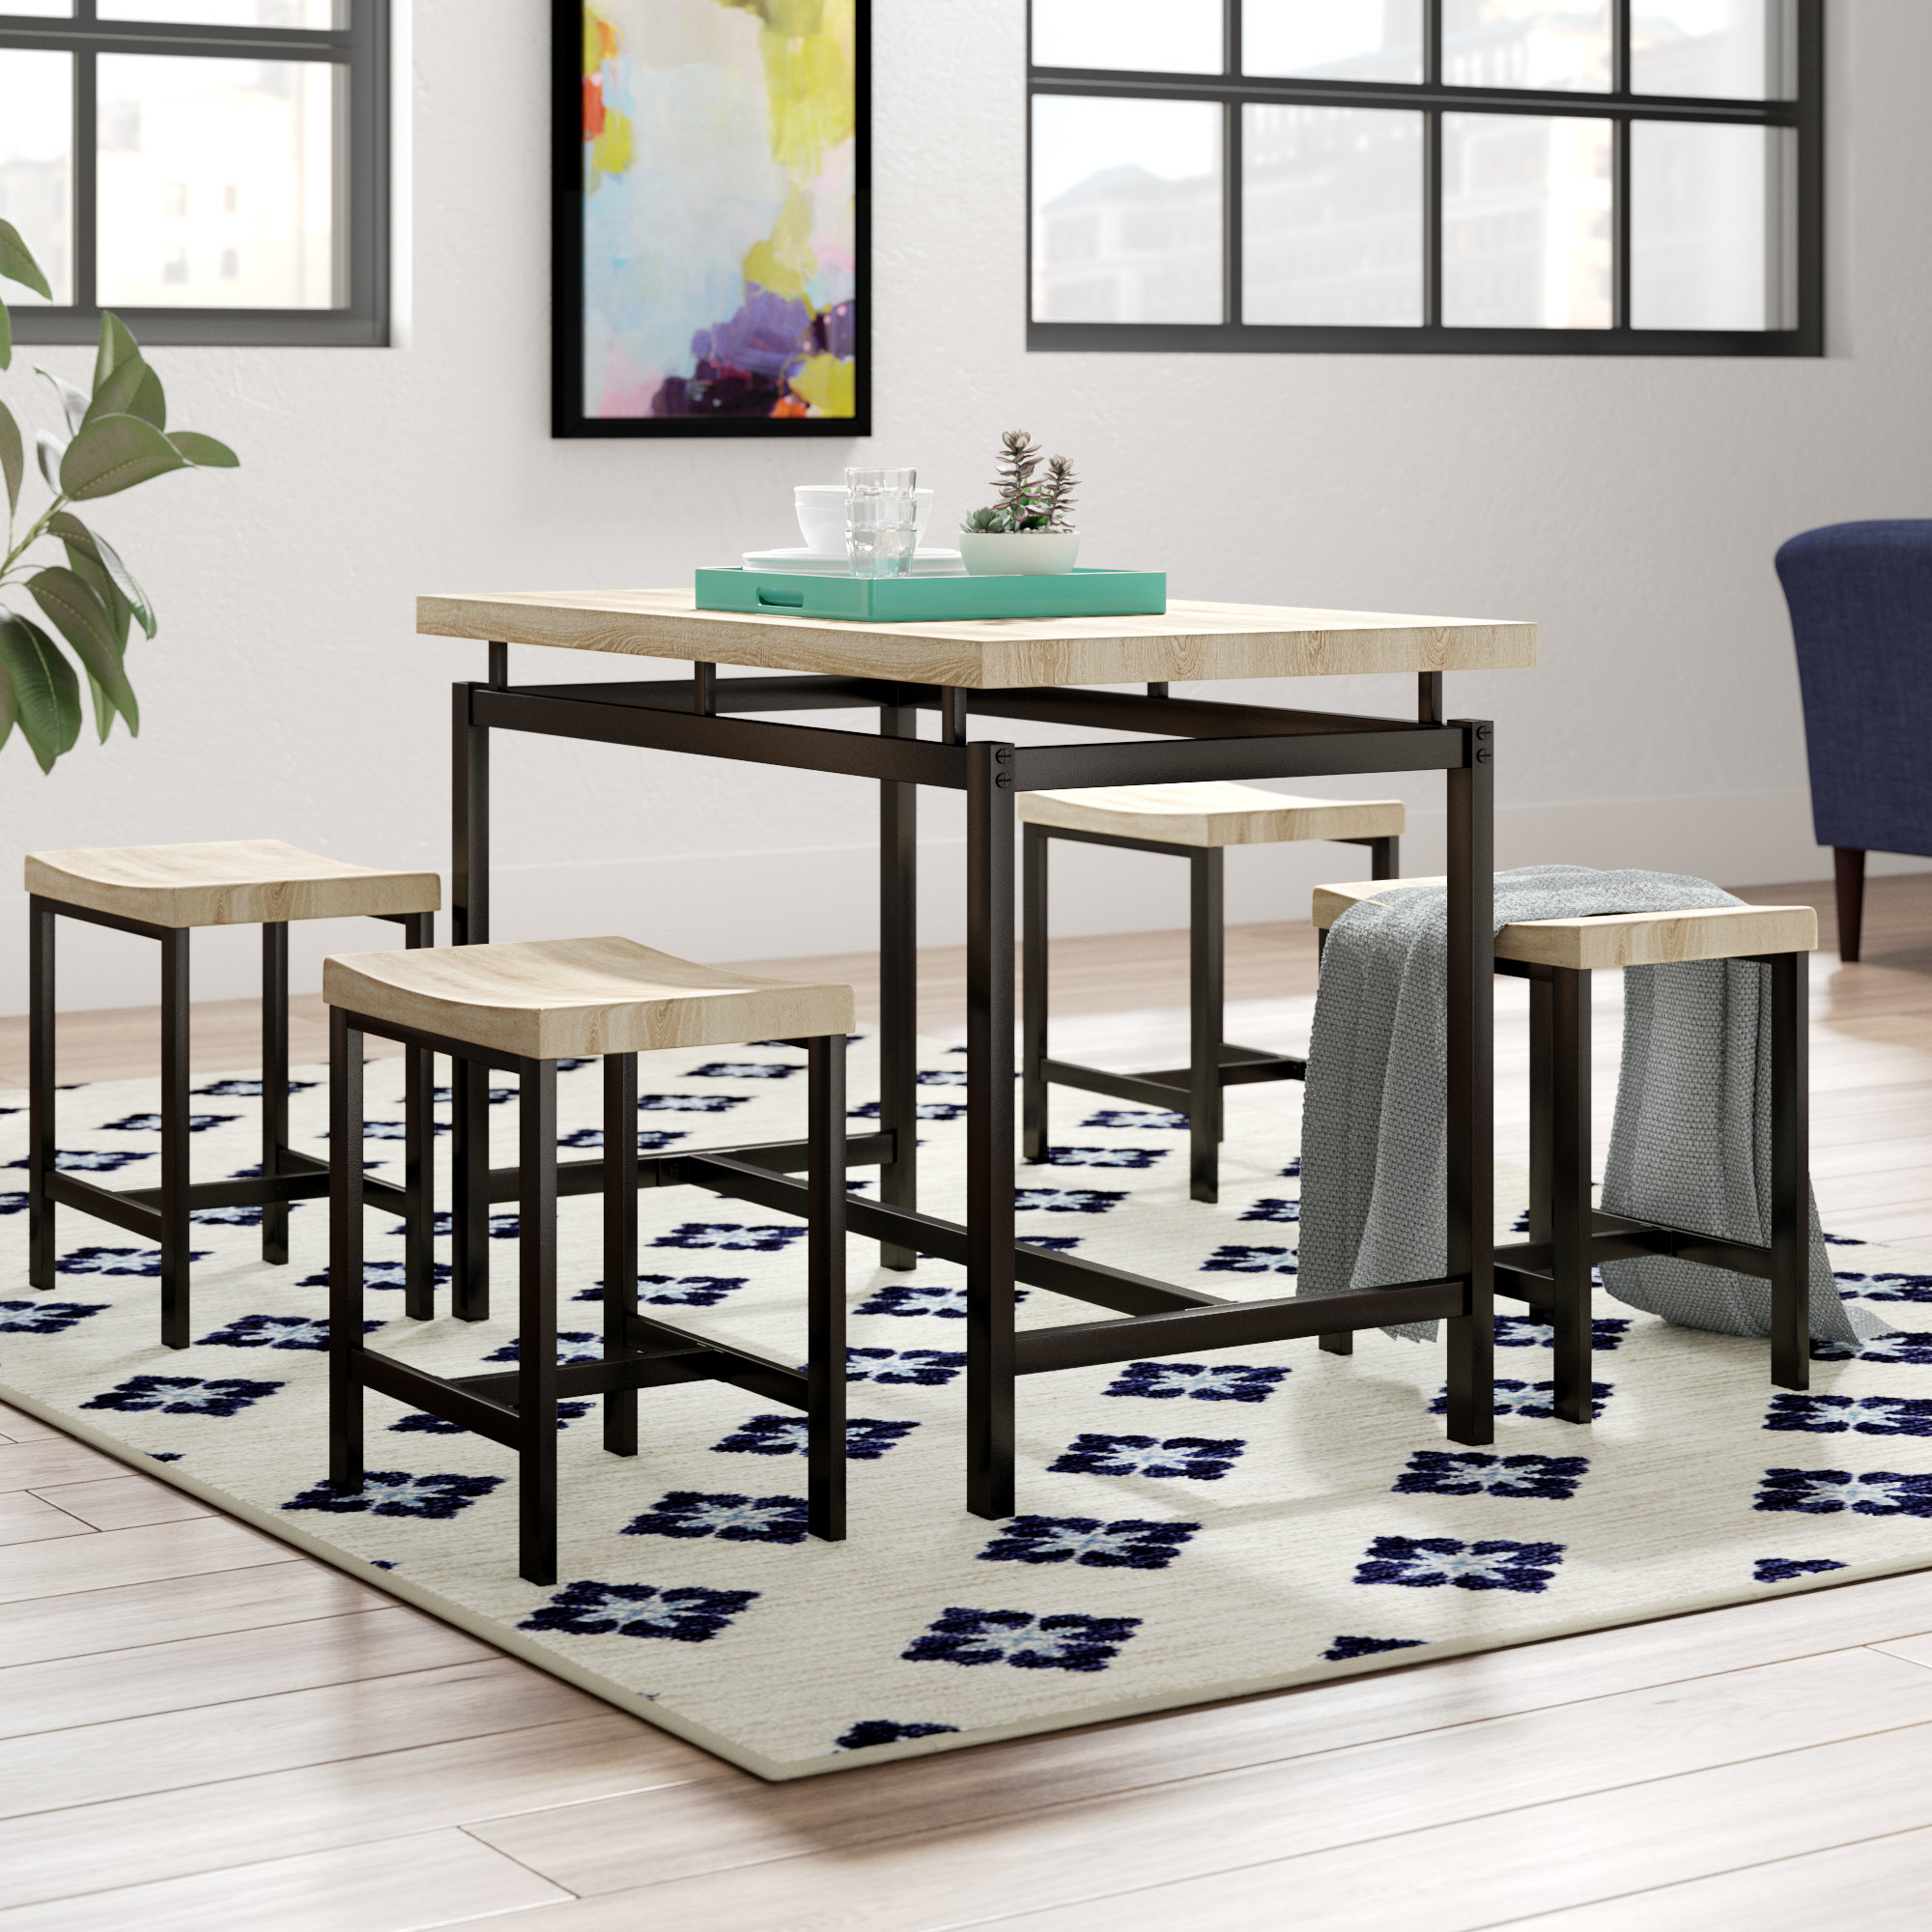 Widely Used Bryson 5 Piece Dining Sets Intended For Bryson 5 Piece Dining Set (View 2 of 20)